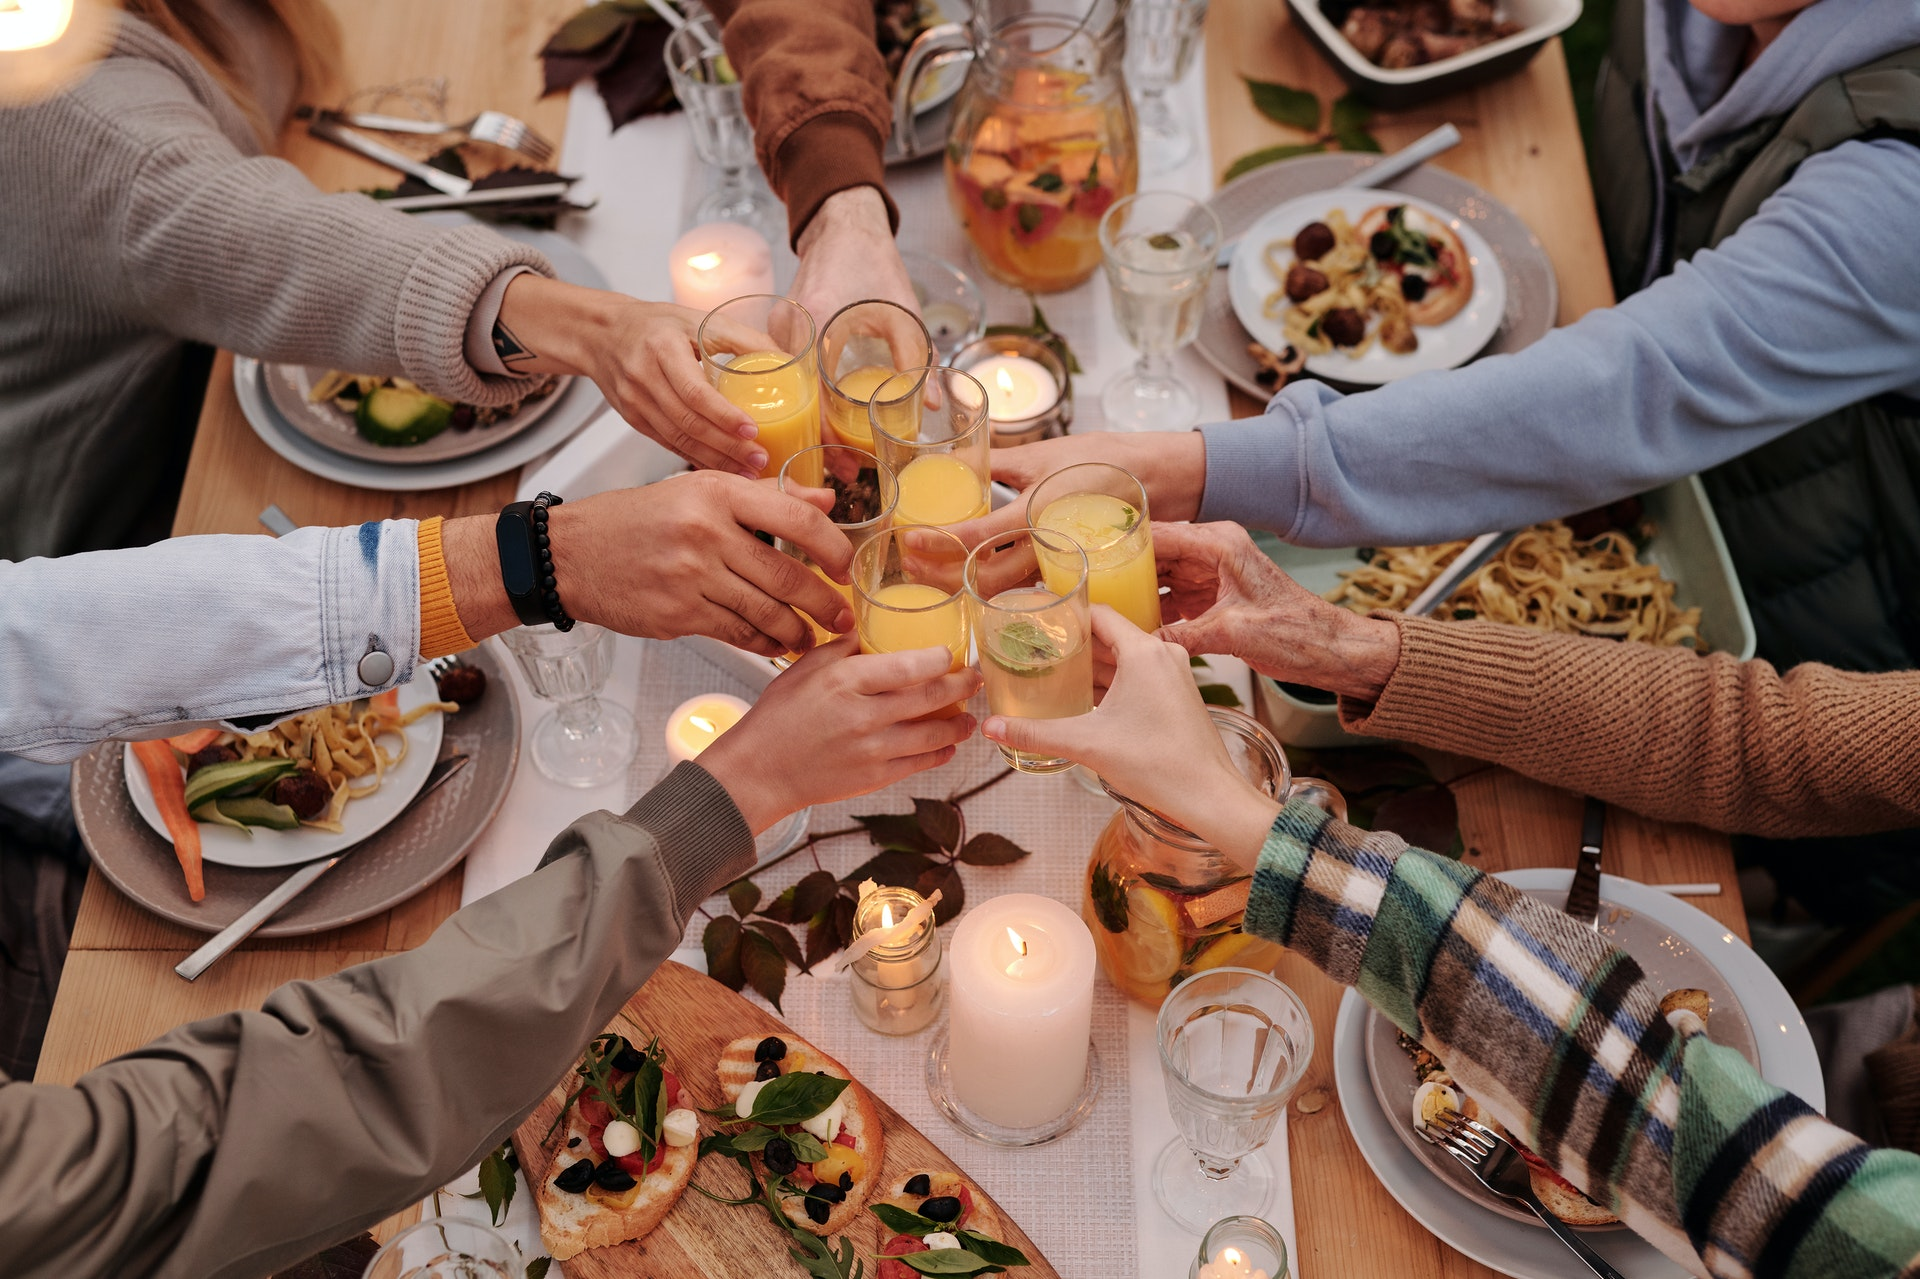 Amazing tips to use when hosting a party